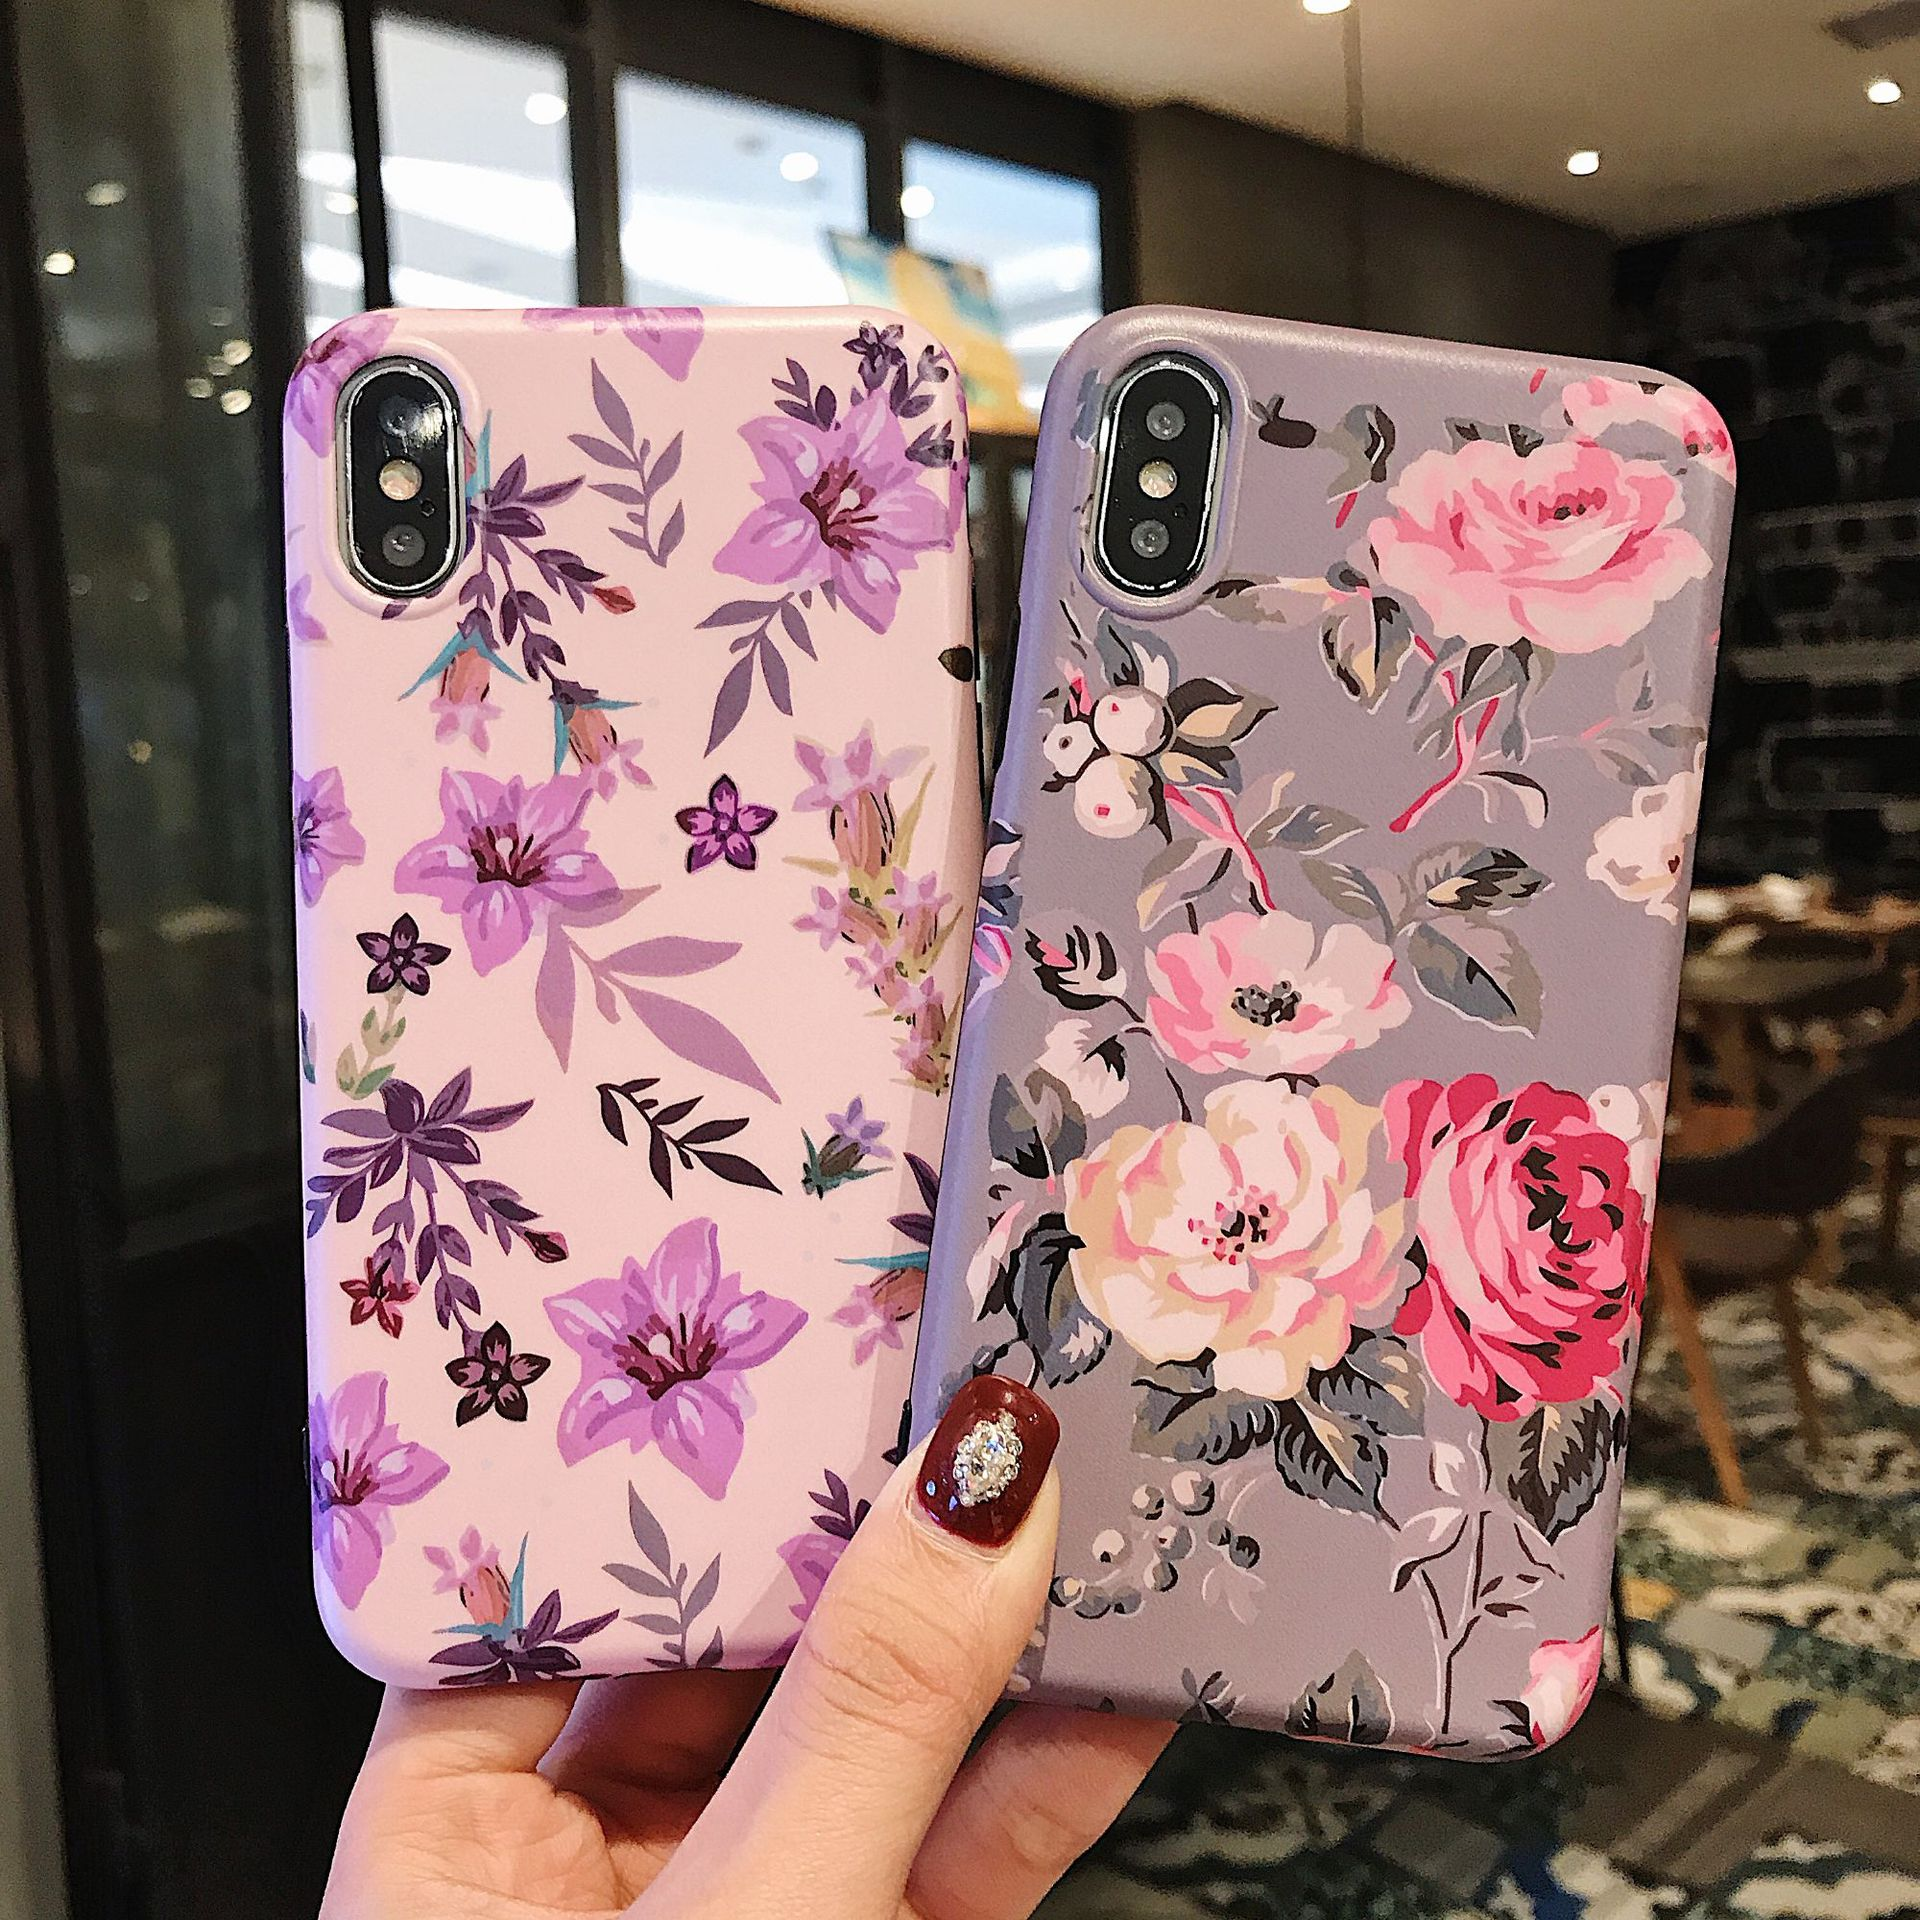 Classic Retro Flower Series Lmd Craft Anti-falling Edge TPU Soft Shell Mobile Phone Protective Cover For Iphone 5